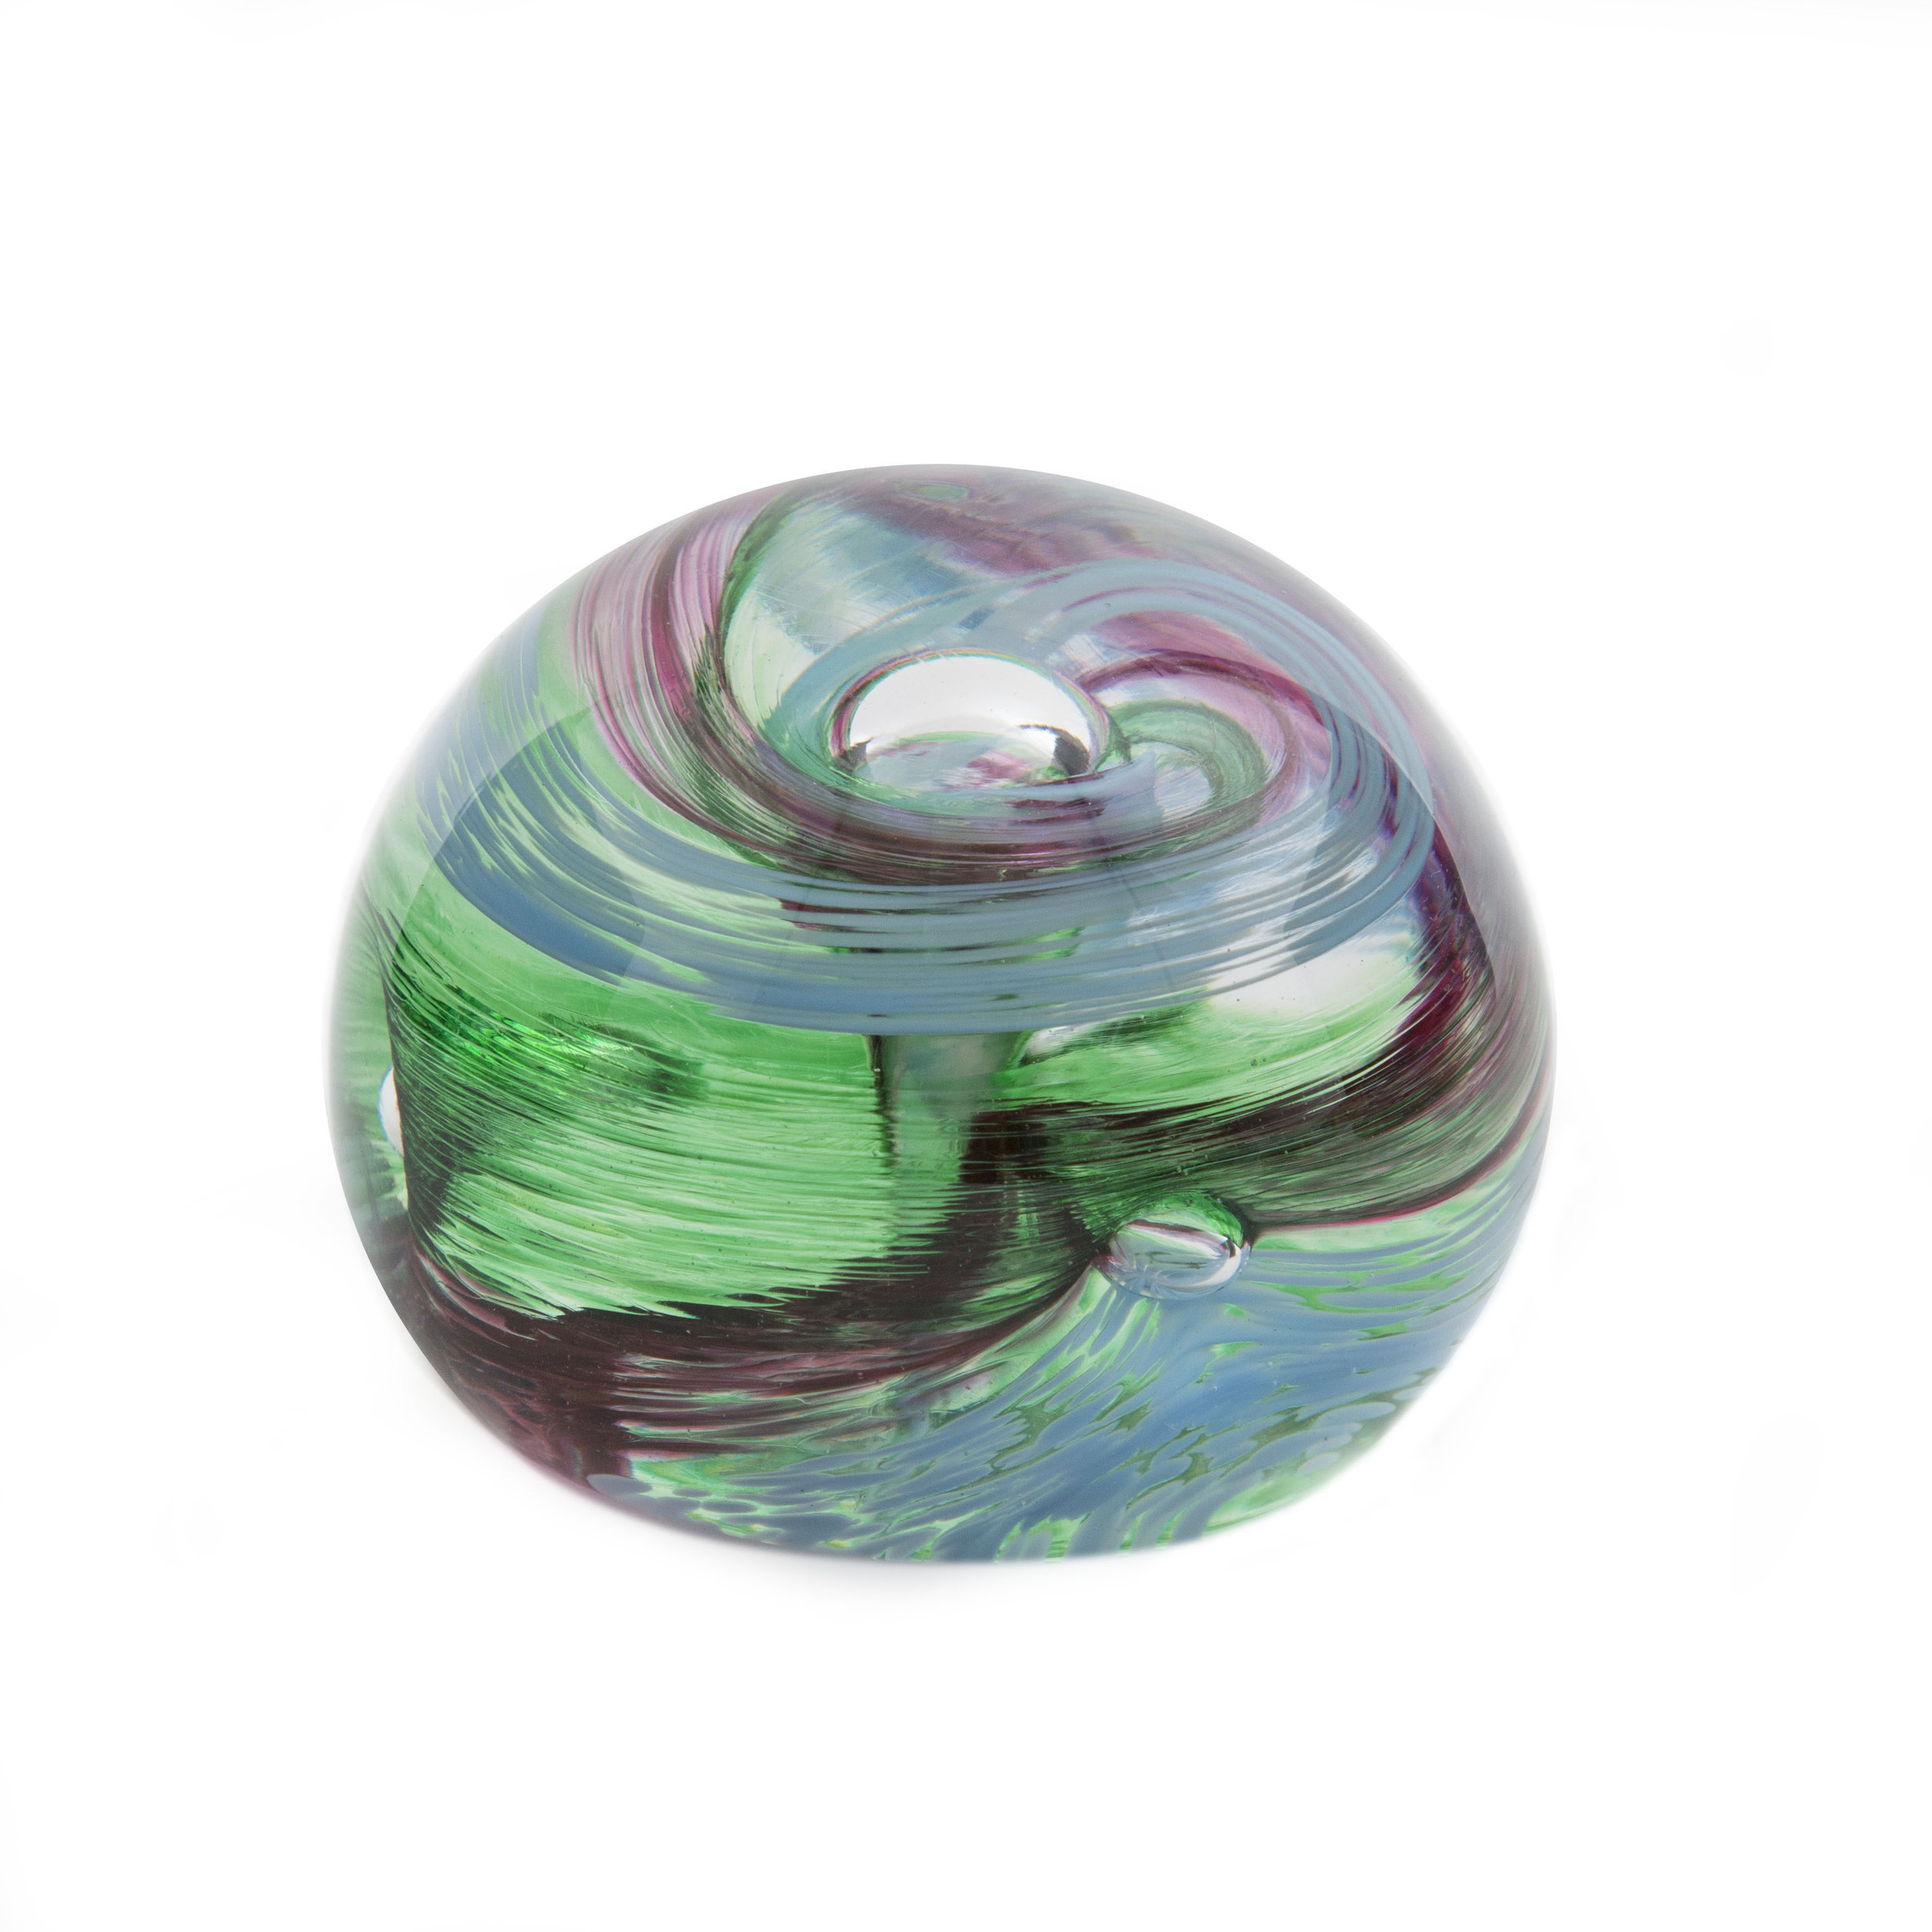 Holdman-studios-blown-glass-experiences-paperweight-example-5.jpg